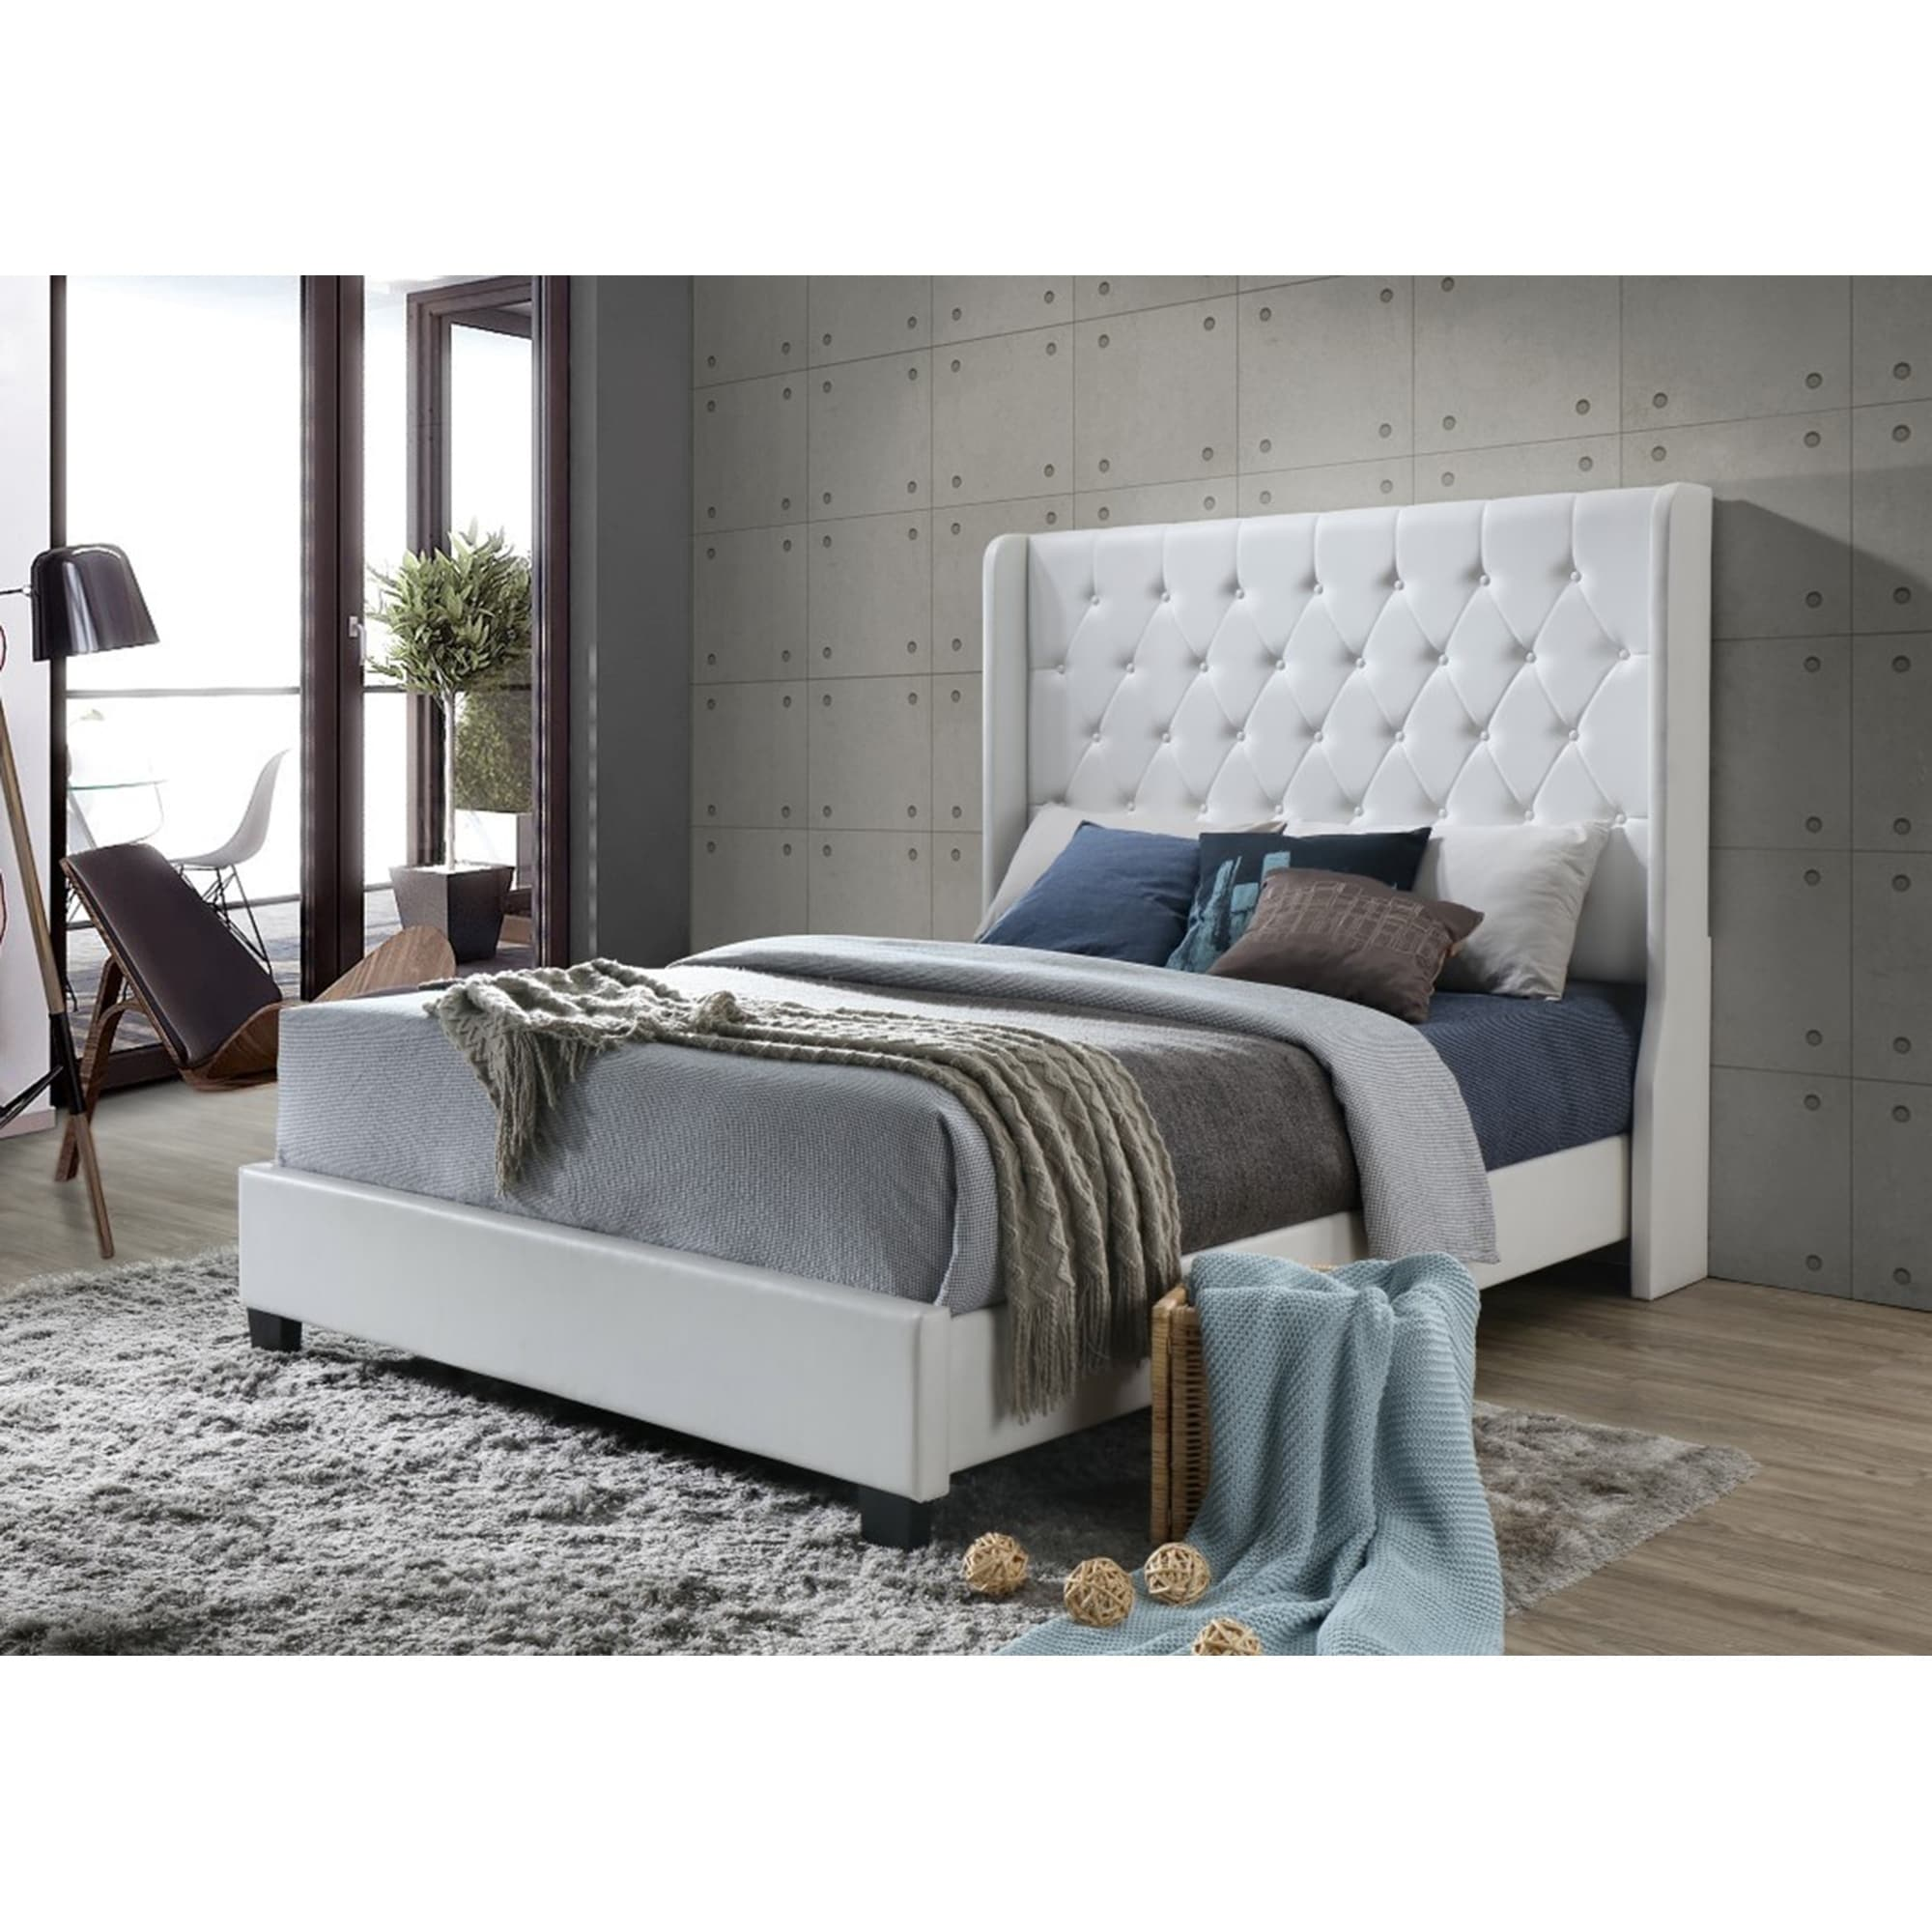 White Platform Bed Without Headboard White Tufted Modern Faux Leather Wingback Queen Platform Bed With A 65 In Tall Headboard No Box Spring Required